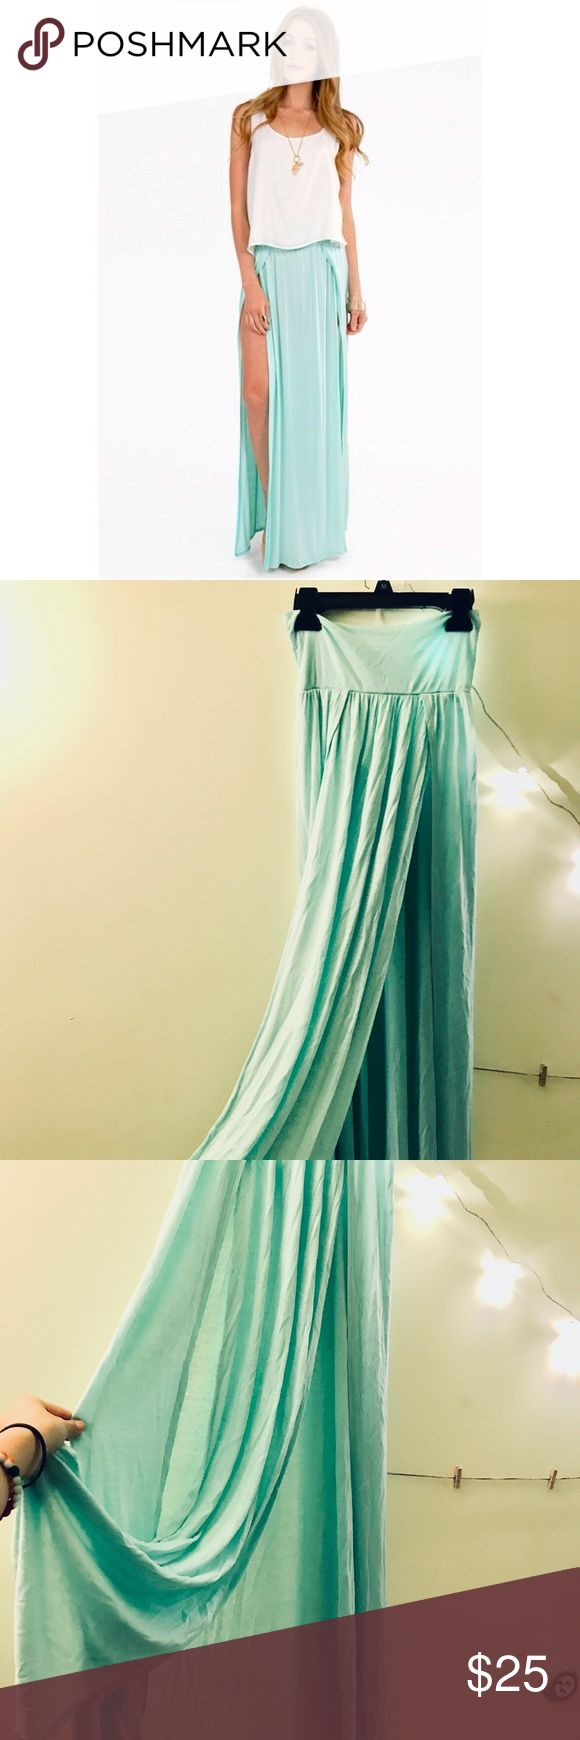 Tobi Double Slit Mint Maxi Skirt Flirty maxi skirt that could be super sexy if worn with crop top or as a coverup for bathing suit. Only worn once. Lightweight material. Tobi Skirts Maxi